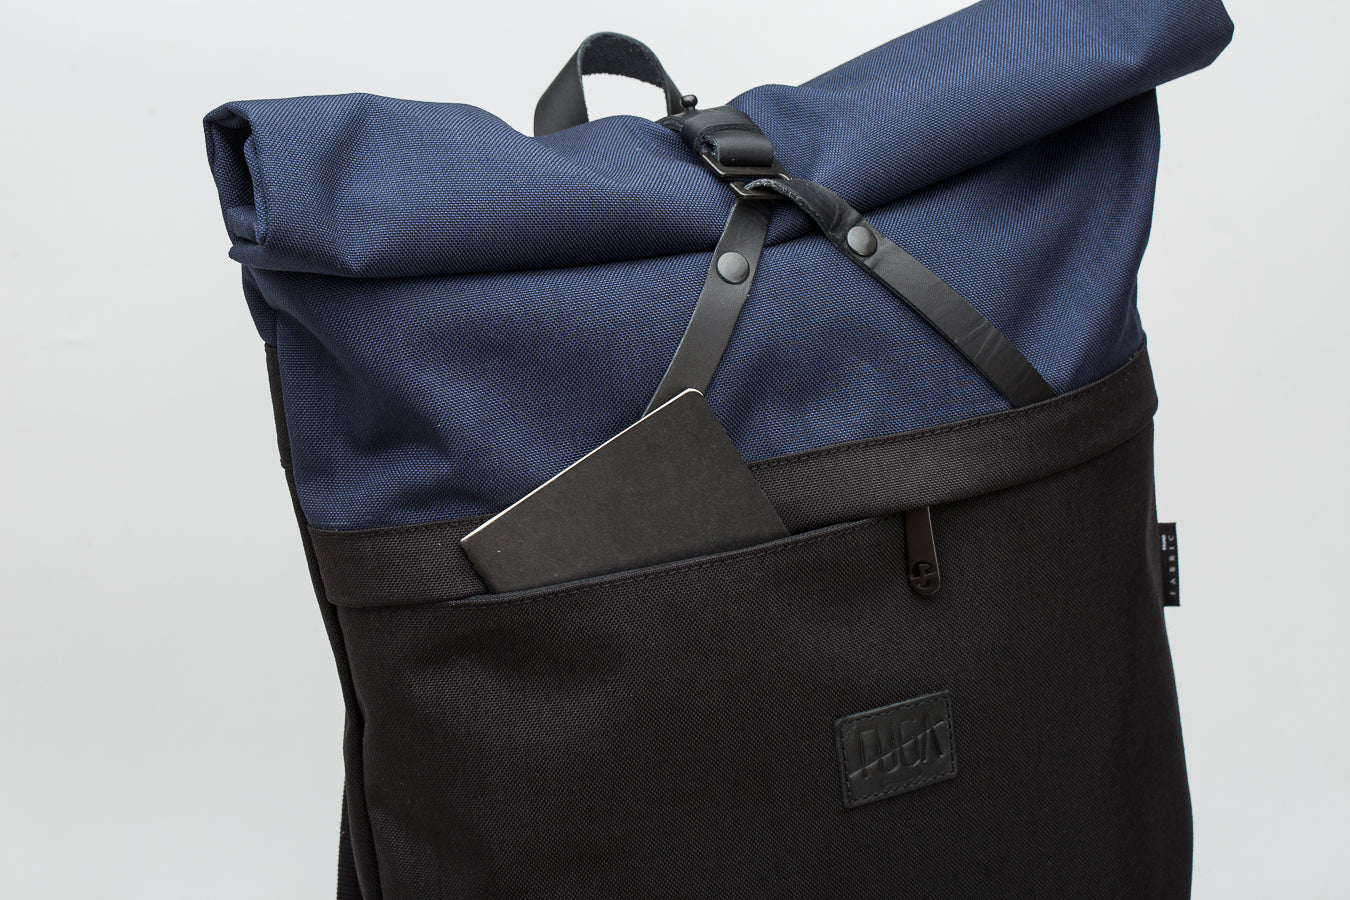 FOLDER SACK NAVY BLUE